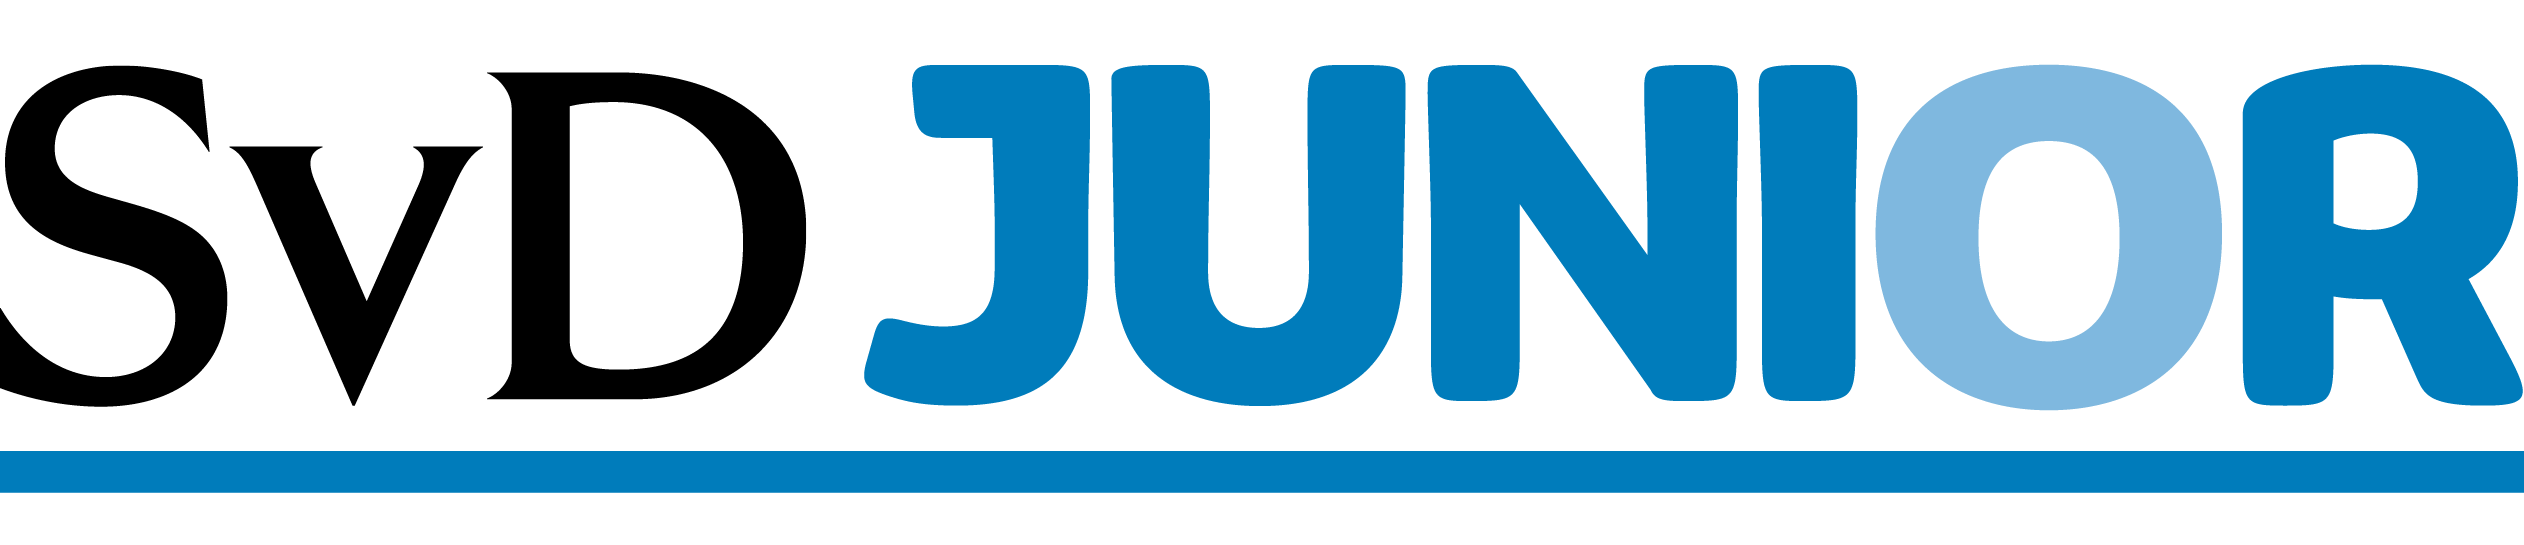 SvD Junior logo